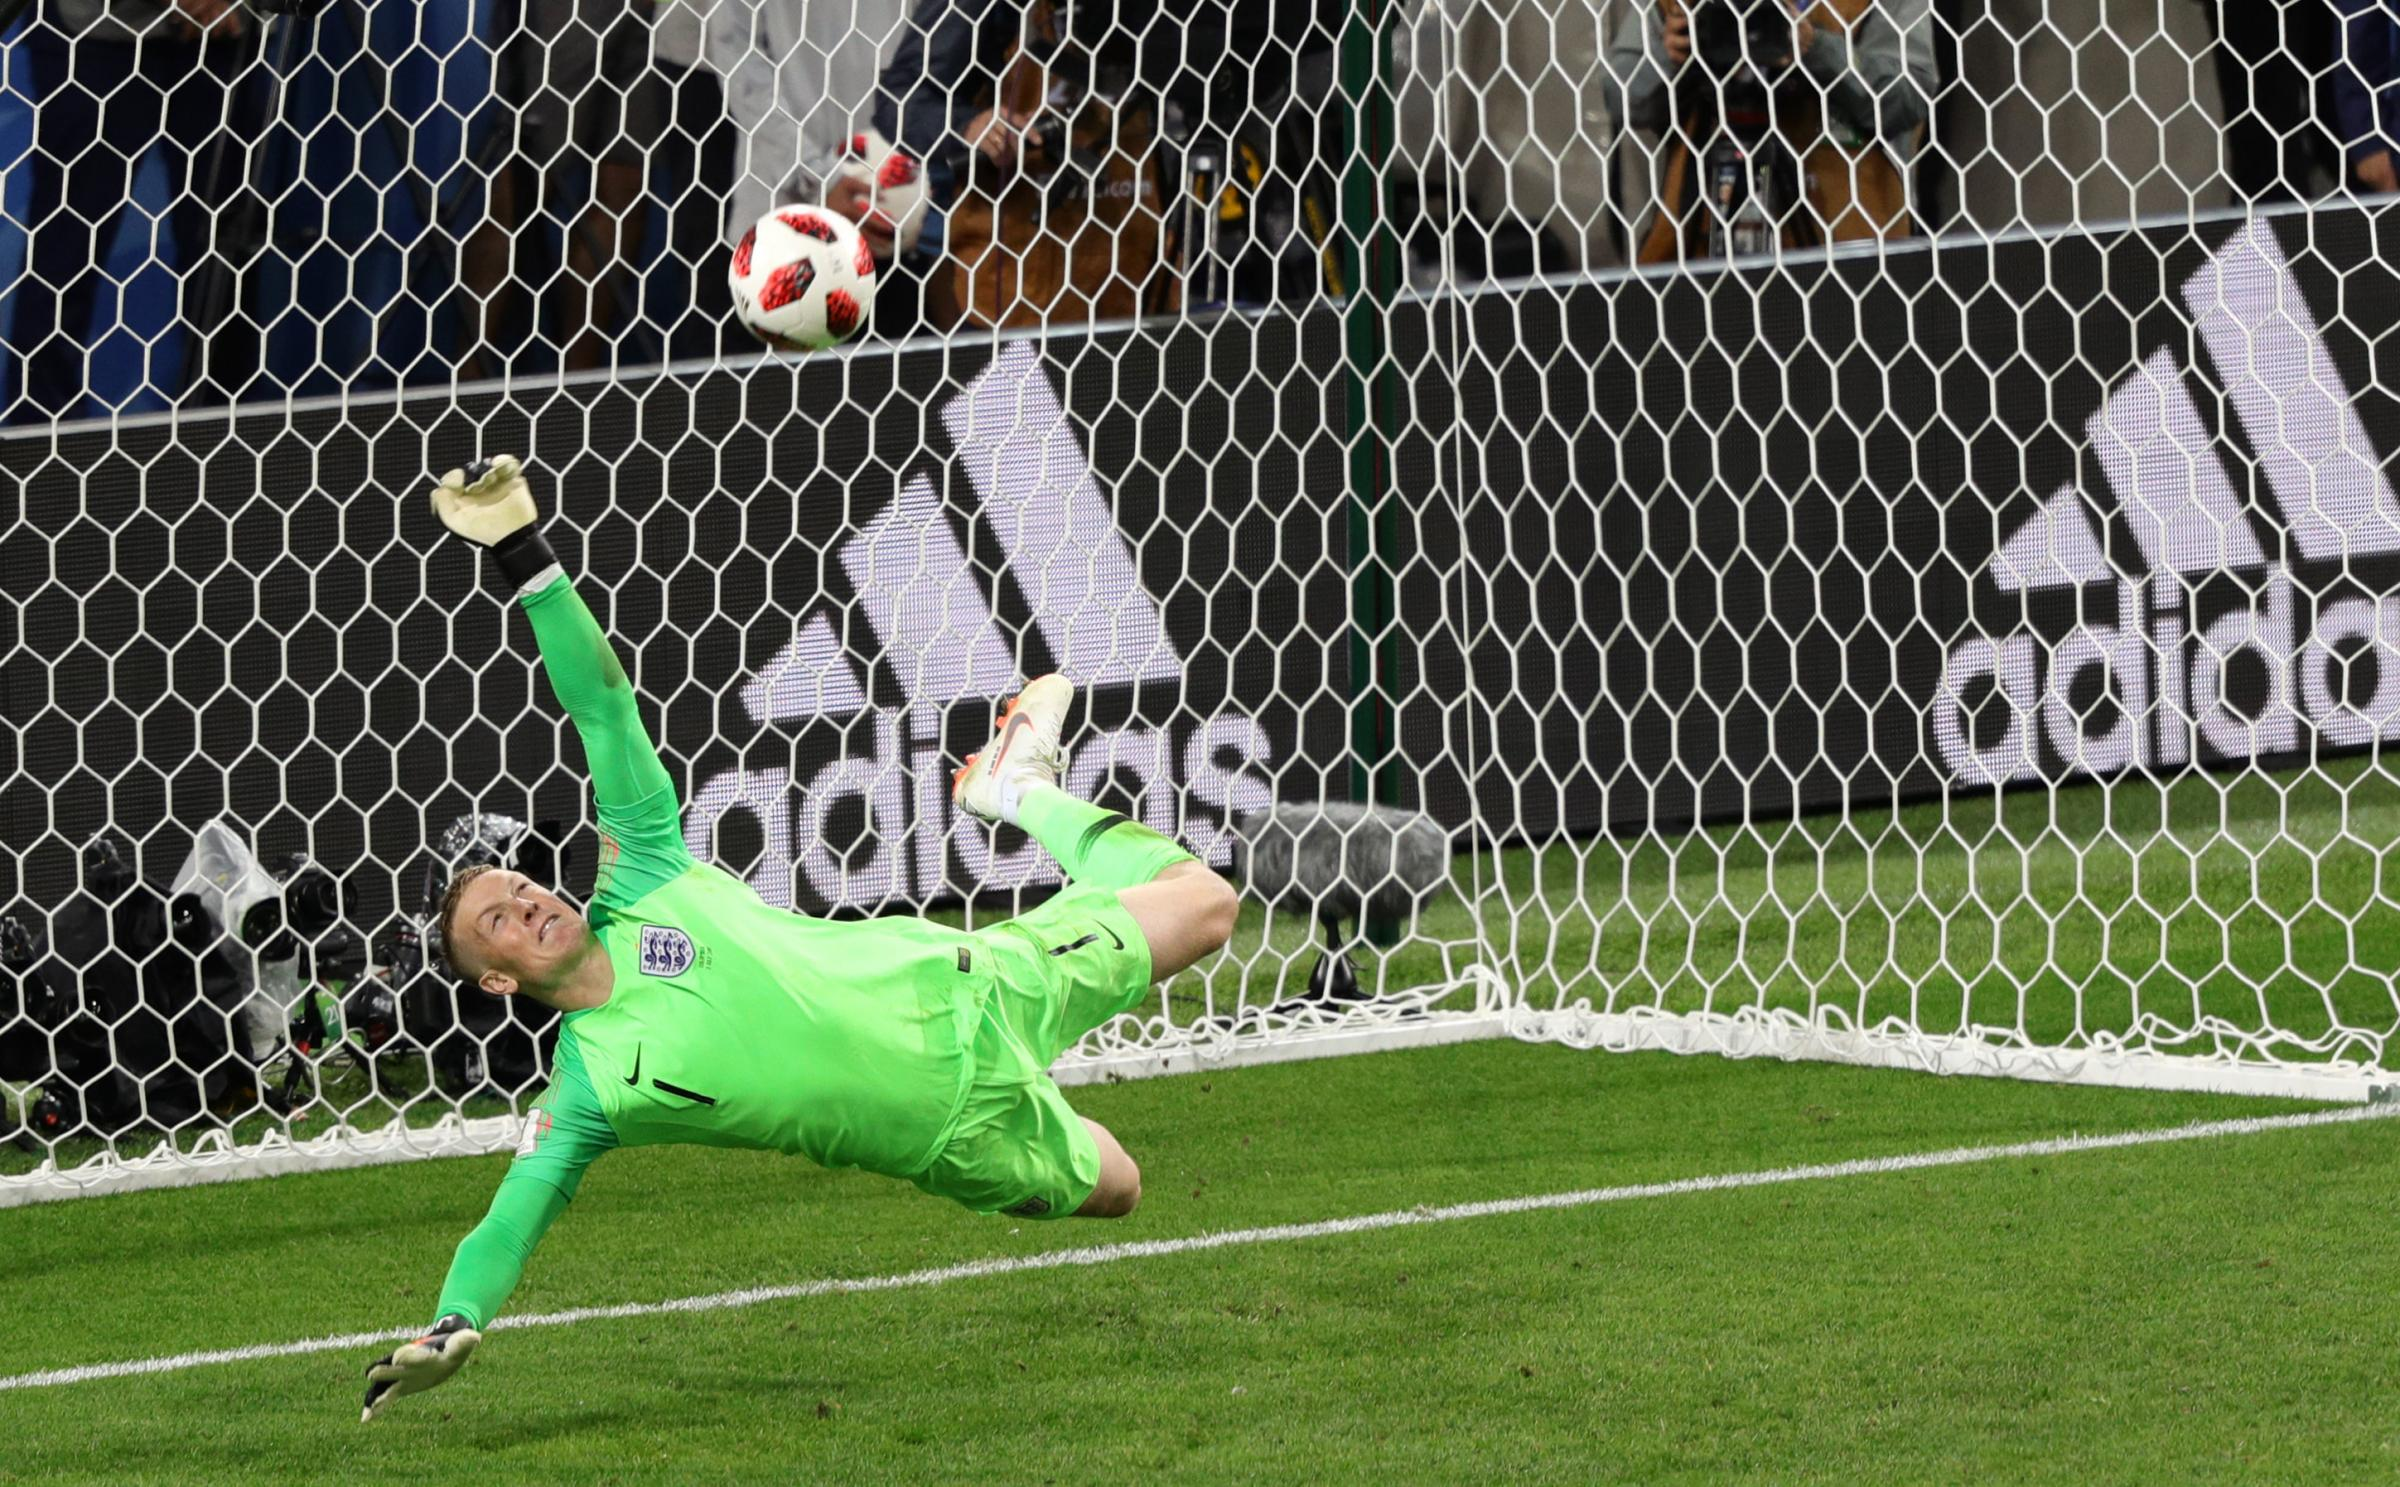 England goalkeeper Jordan Pickford saves a penalty from Colombia's Carlos Bacca during the FIFA World Cup 2018, round of 16 match at the Spartak Stadium, Moscow. PRESS ASSOCIATION Photo. Picture date: Tuesday July 3, 2018. See PA story WORLDCUP Colombia